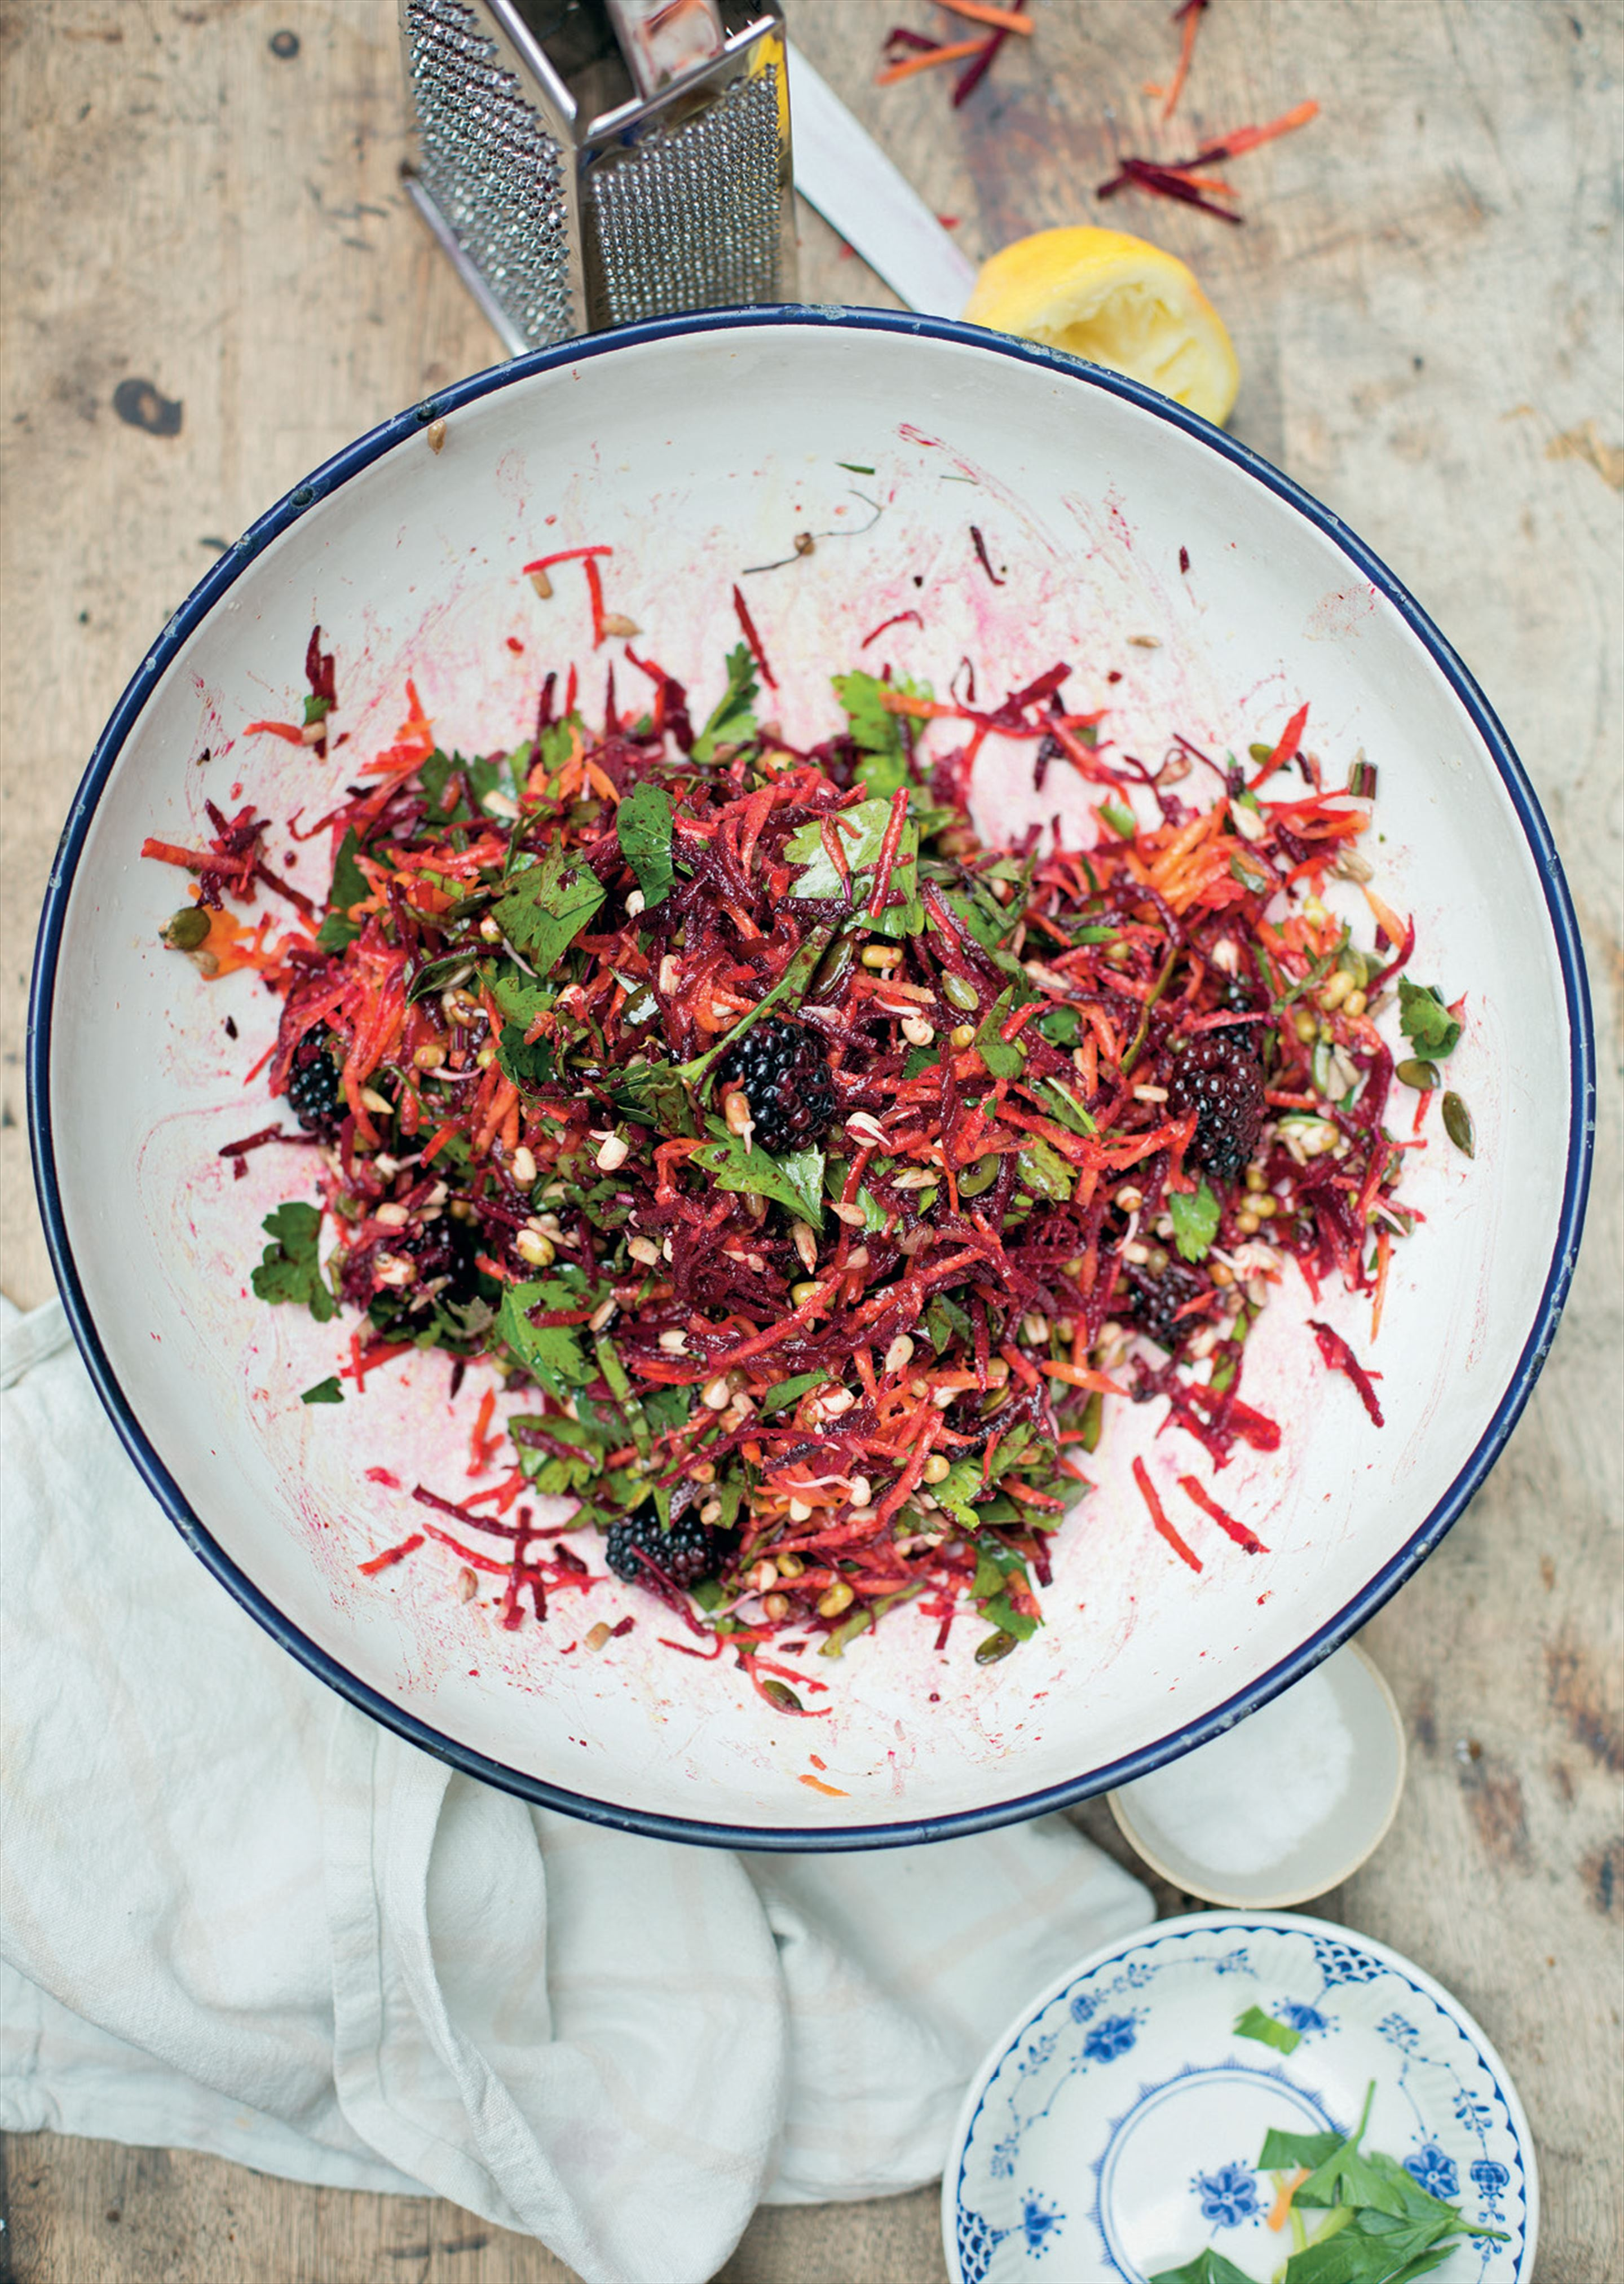 Autumn slaw with greens, beetroot, blackberries, seeds and sprouts